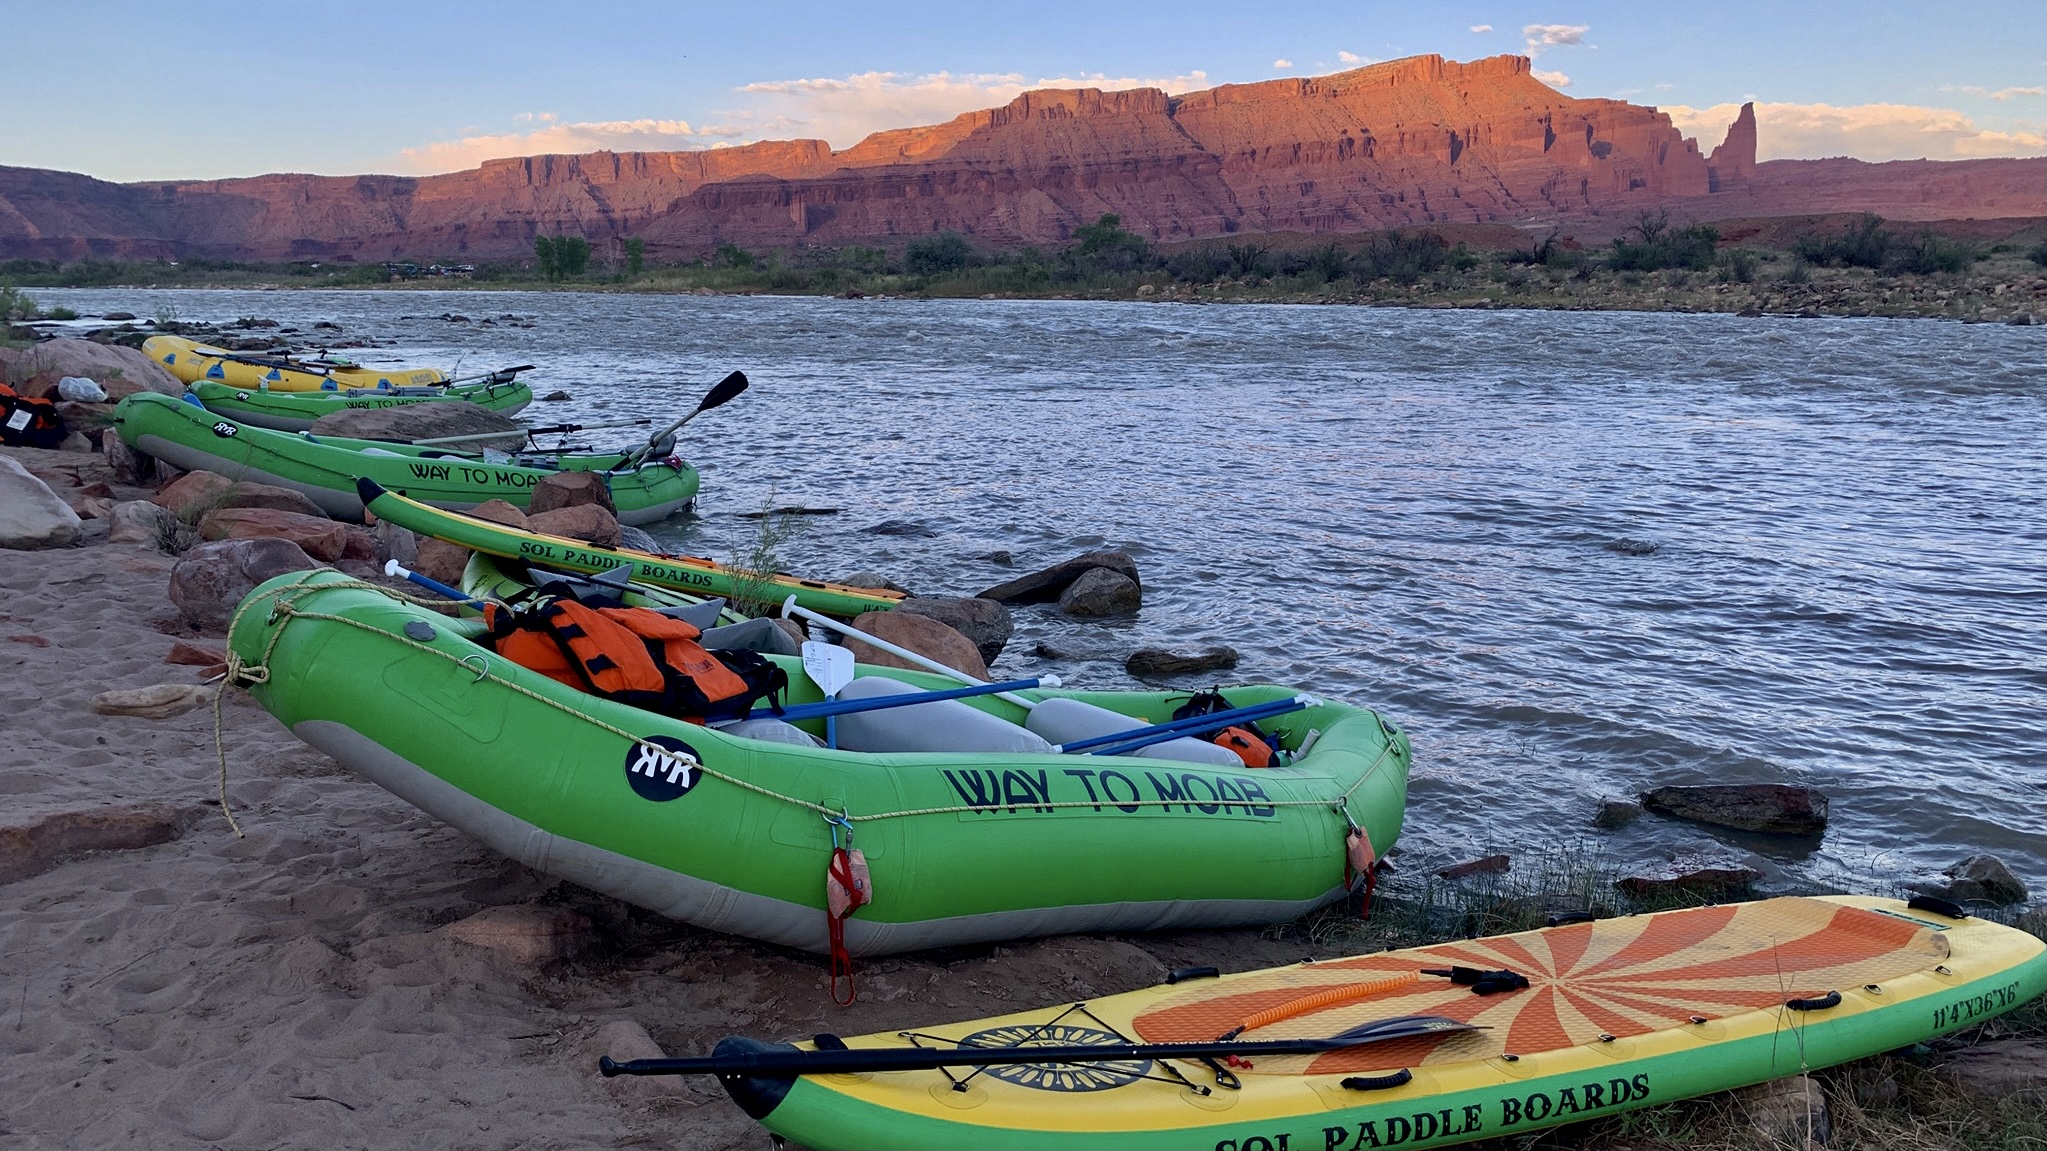 FRANKTOWN YOUTH EXPLORE MOAB AND THE UTAH WILDERNESS